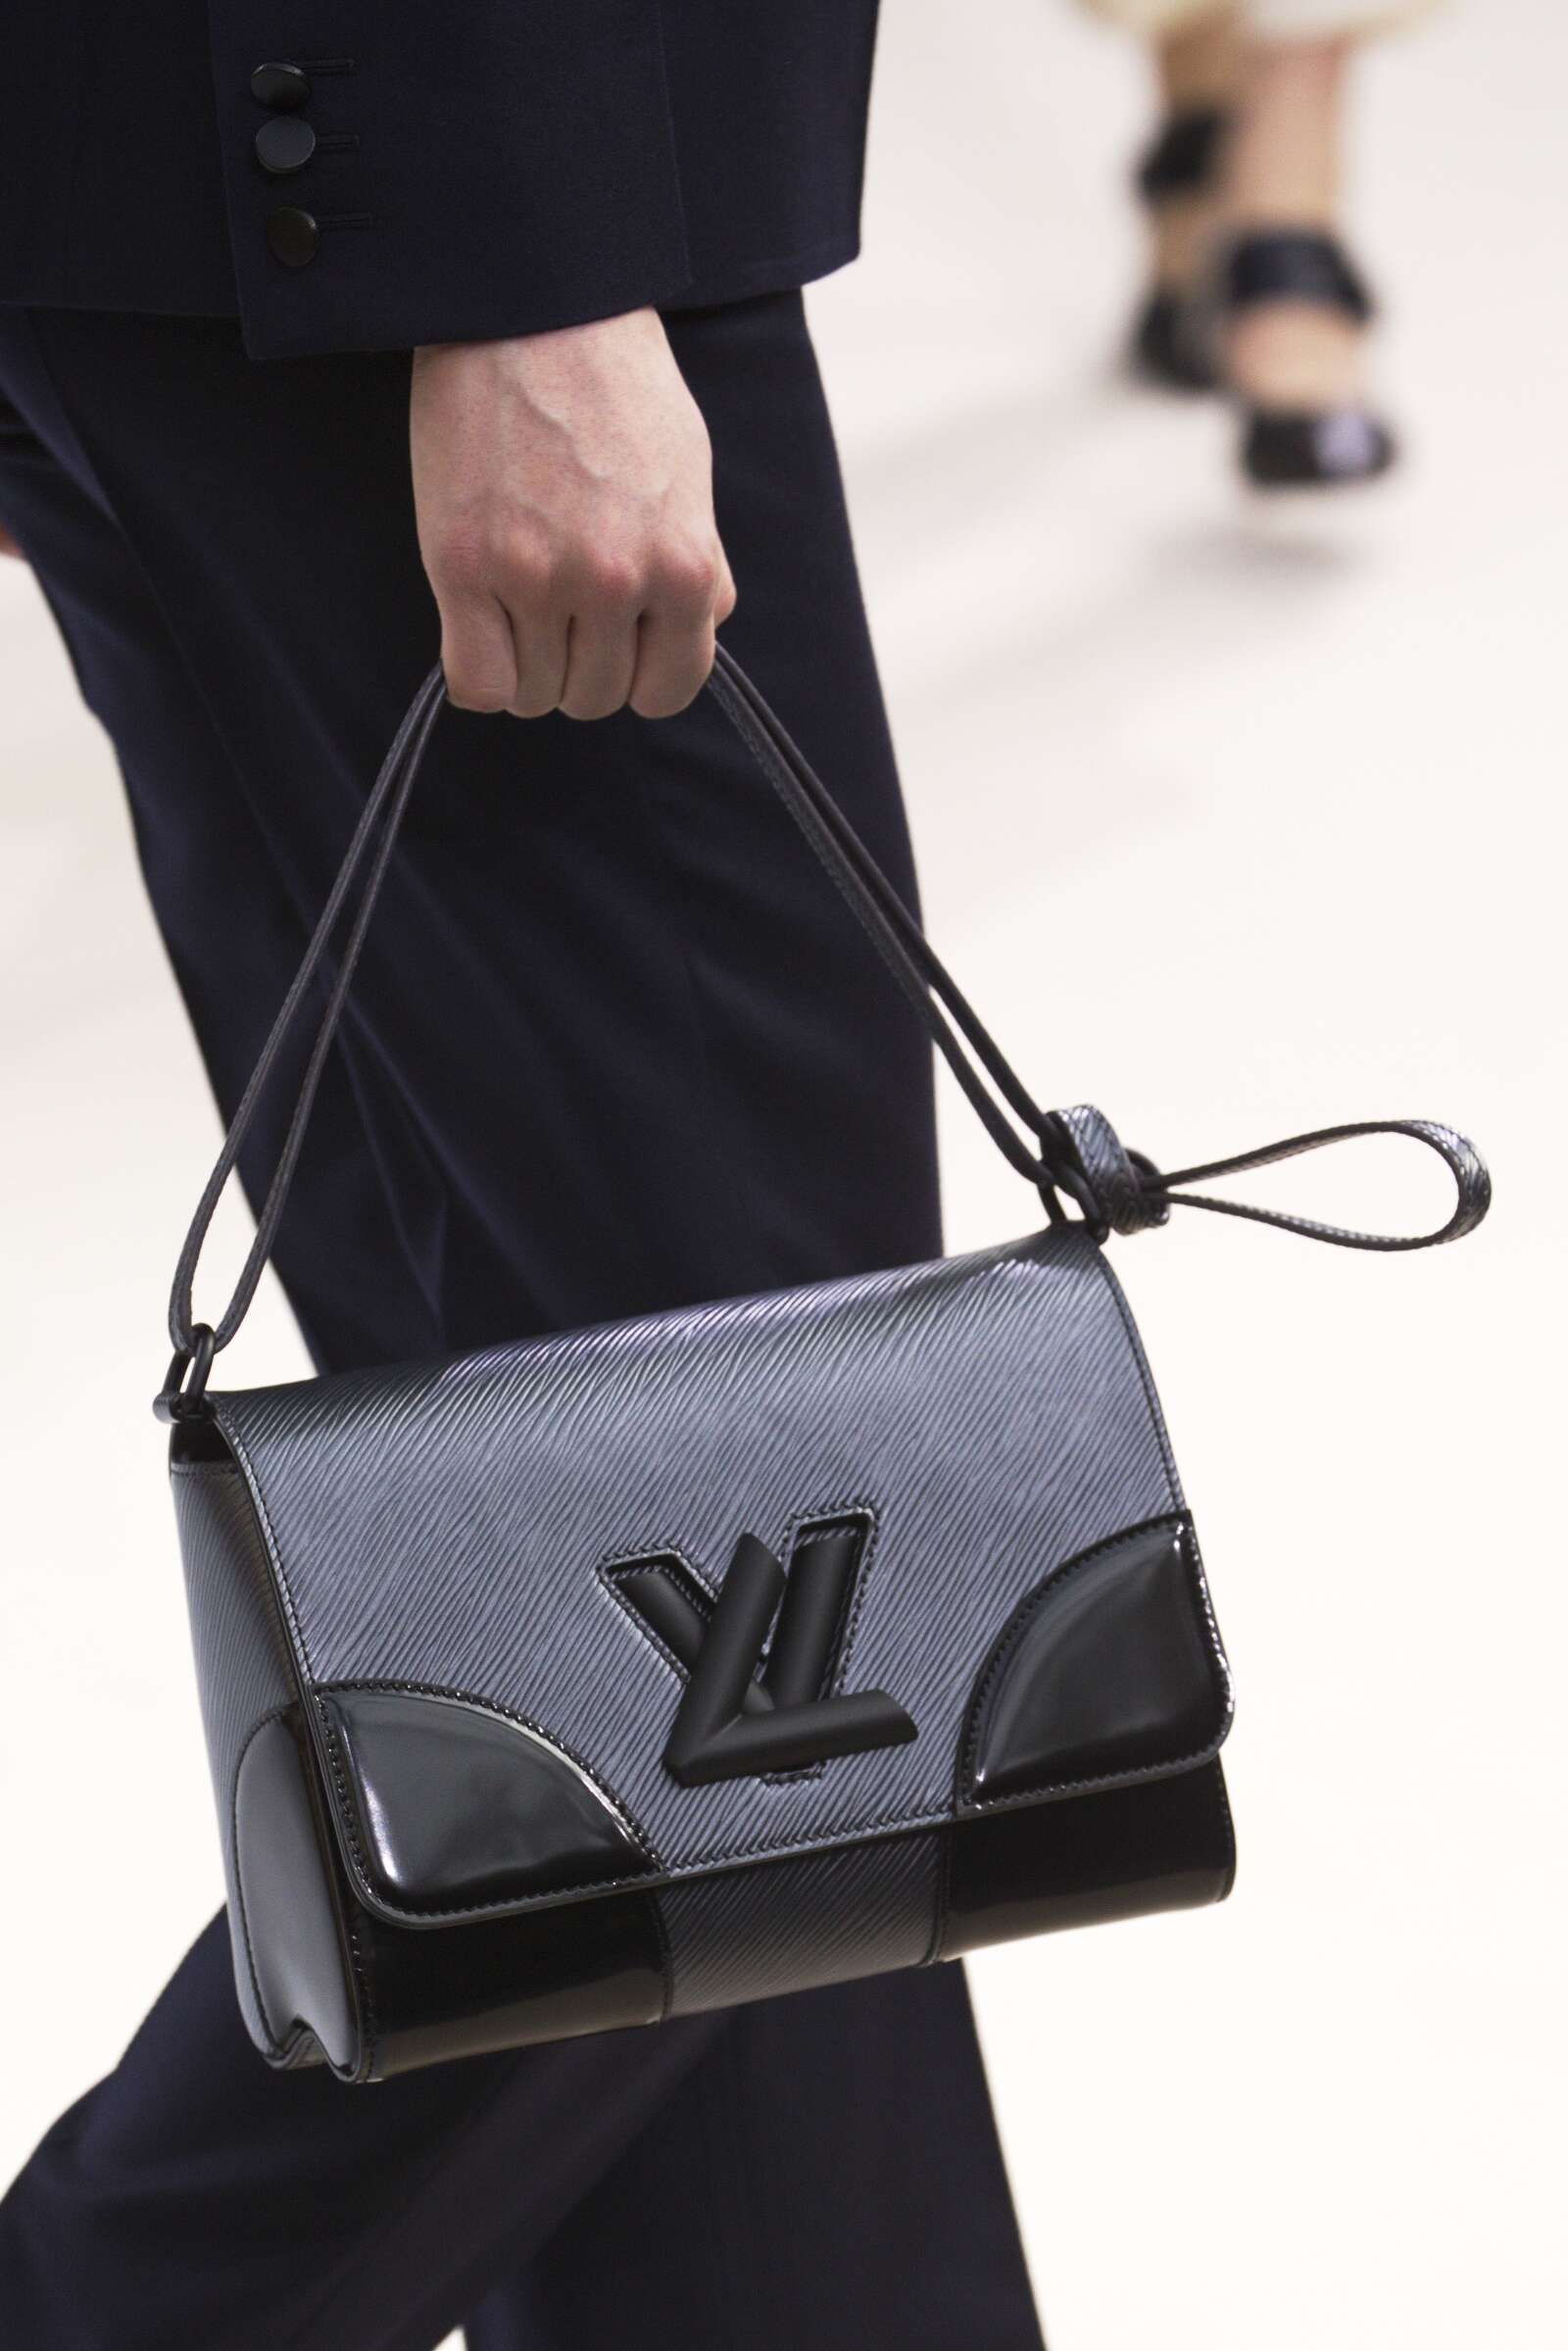 2015 Fashion Woman Model Louis Vuitton Bag Details Collection Catwalk